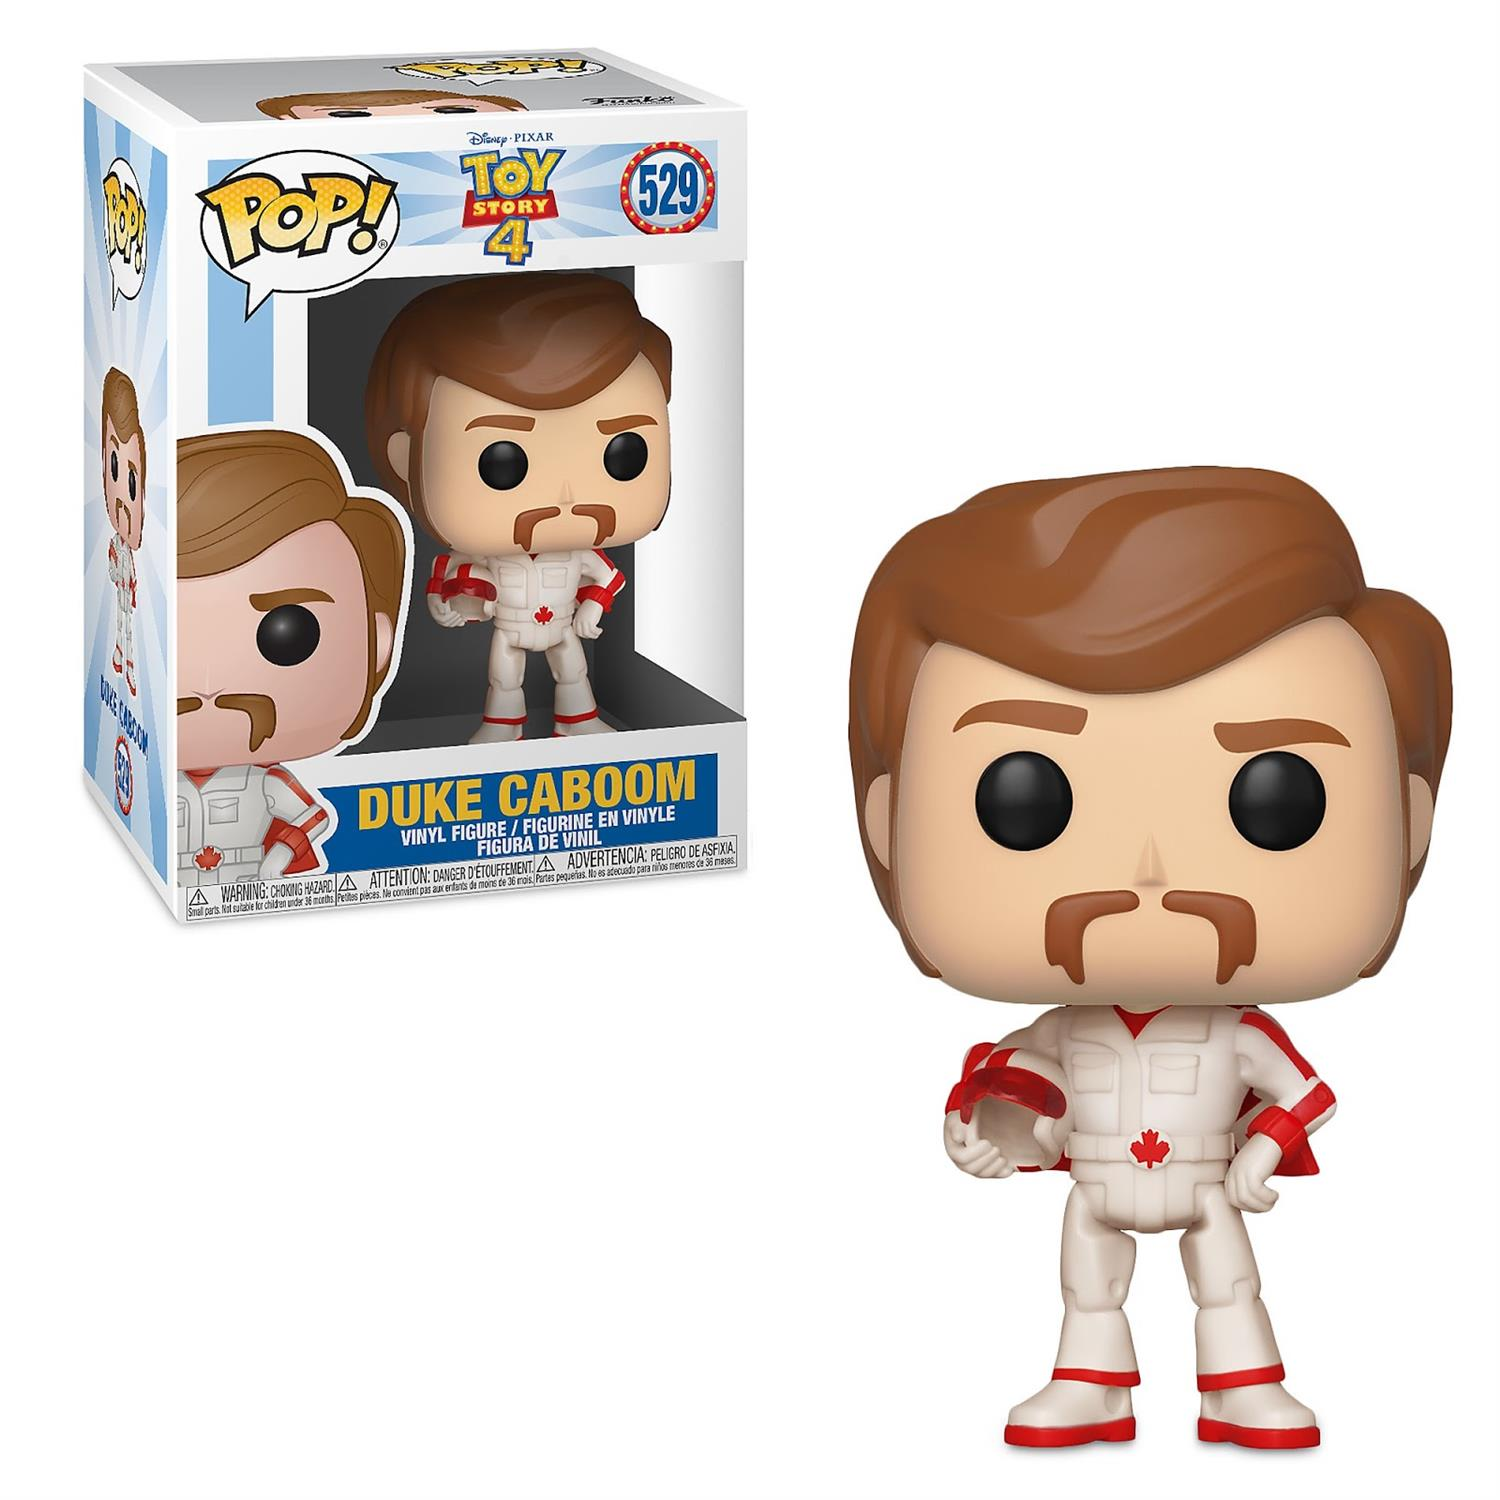 Quot Toy Story 4 Quot Funko Pop Figures Arrive On Shopdisney